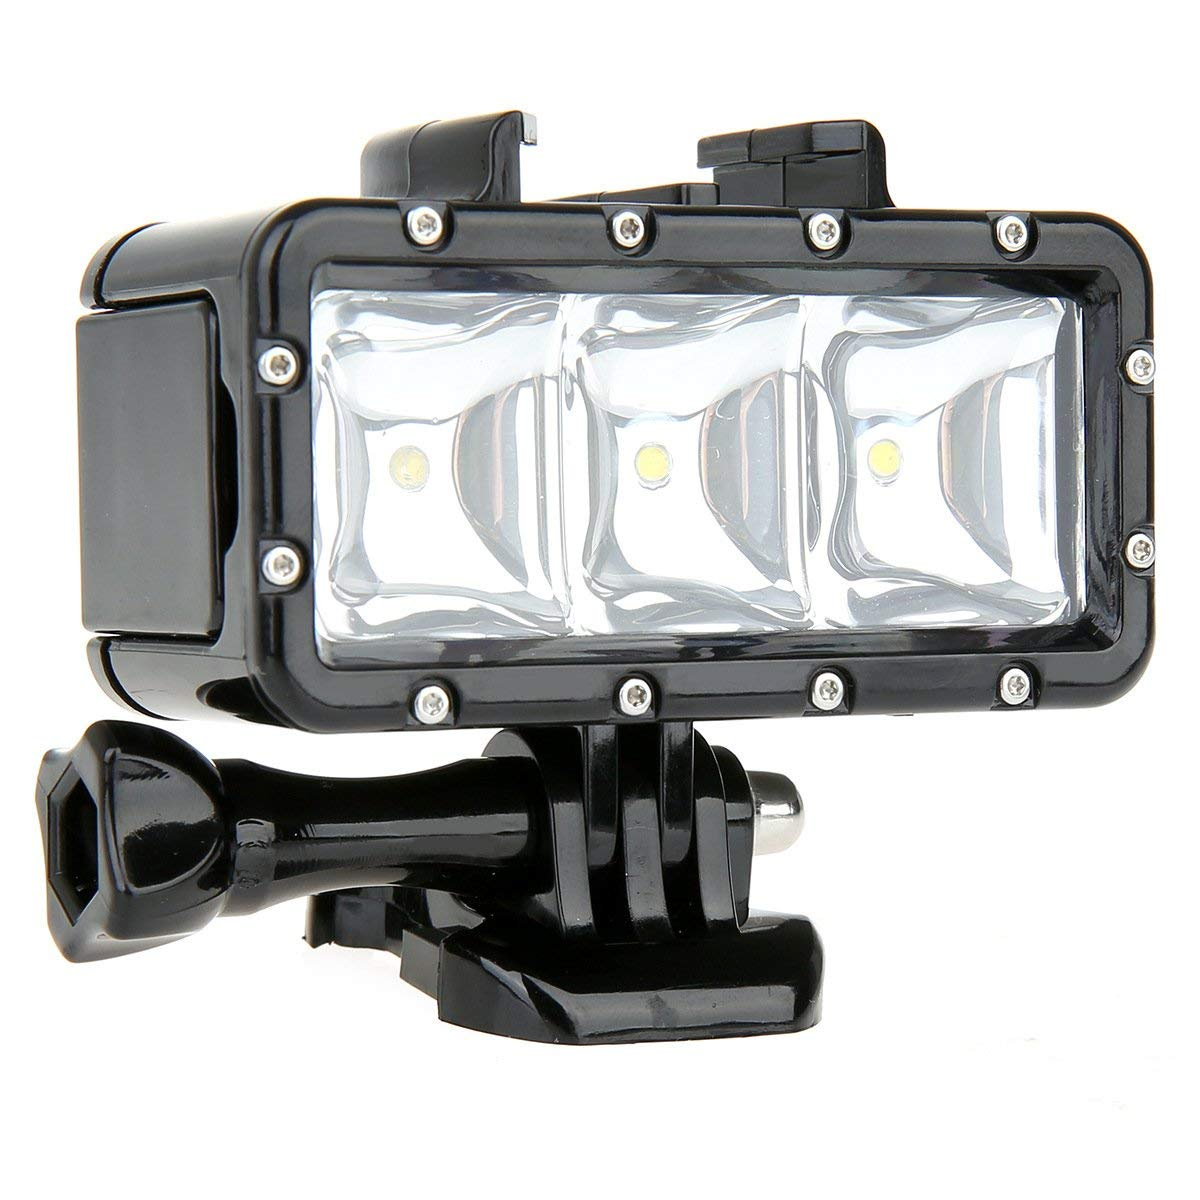 Garyesh Waterproof 30m Diving Light High Power Dimmable LED Underwater Fill Light for GoPro All Sports Cameras with 1000mAh Built-in Rechargeable Battery